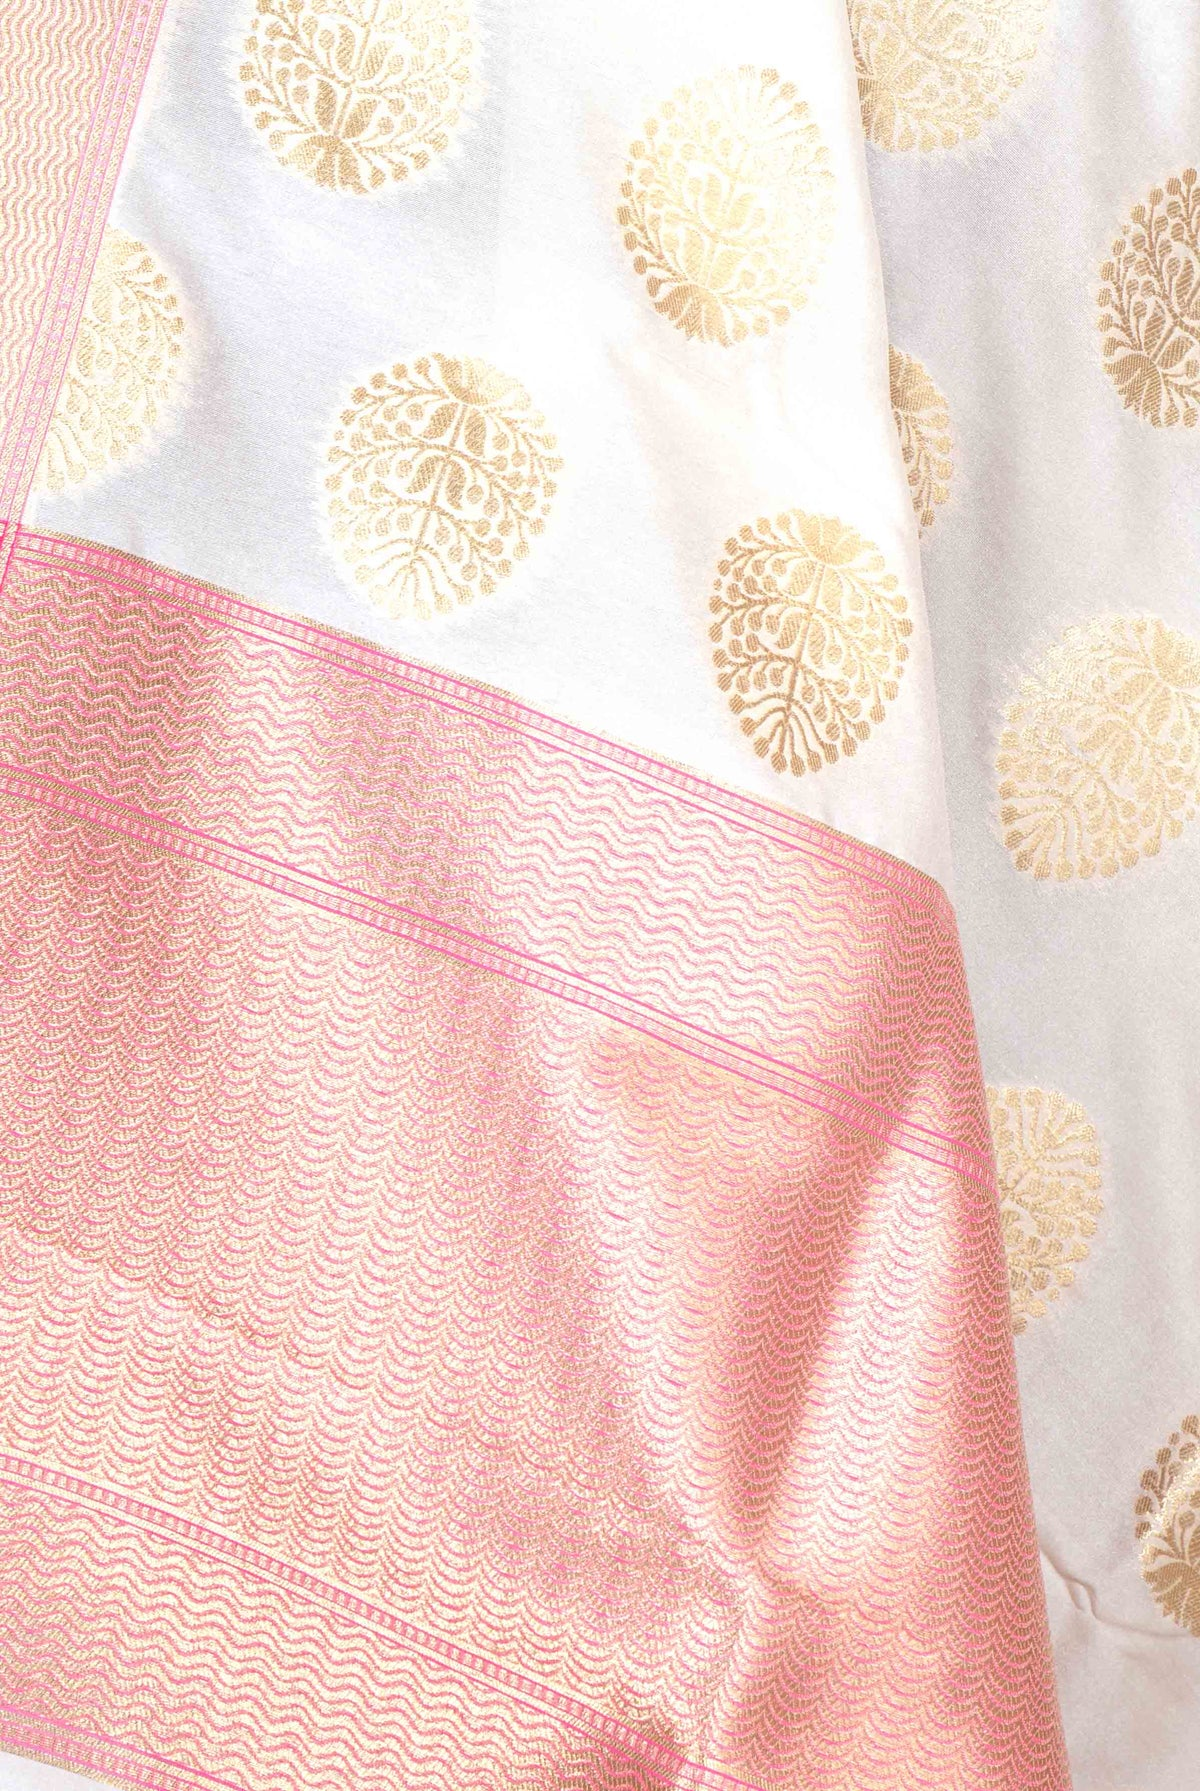 Off White Banarasi dupatta with plant like elliptical motif (2) CLoseup